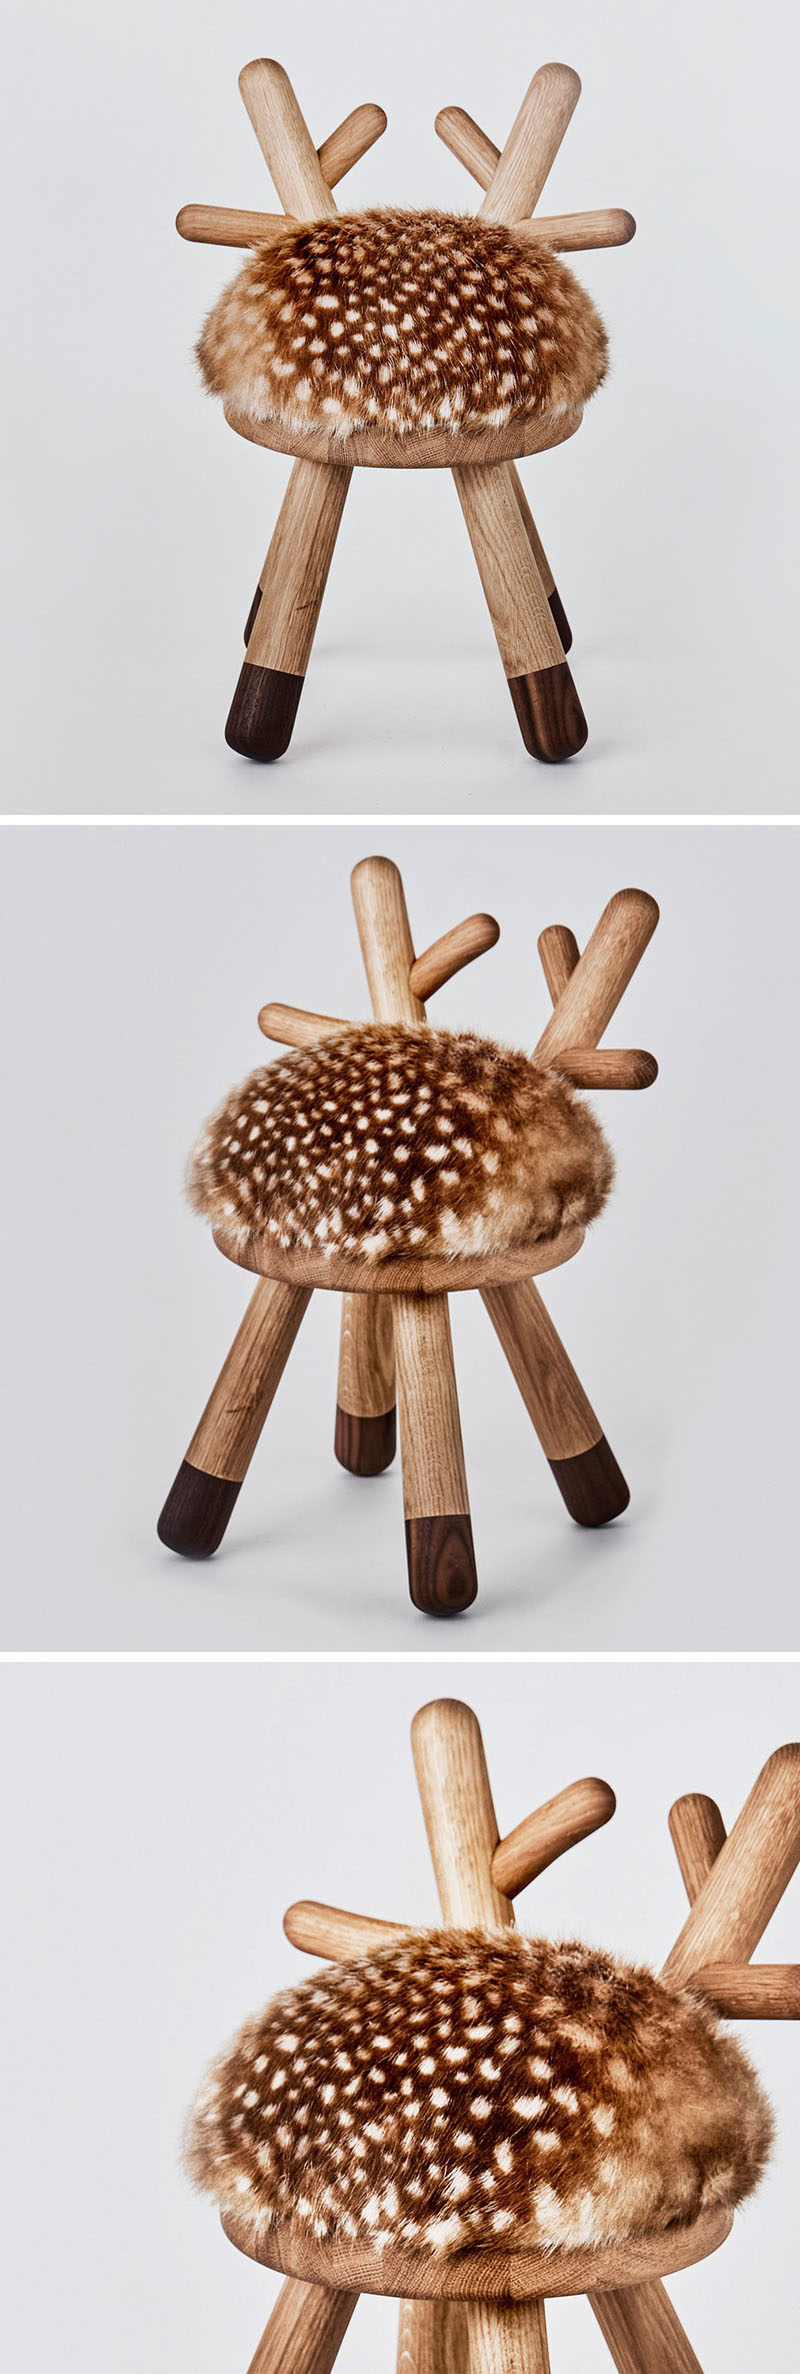 whimsical-farm-animal-stools-deer-150517-1243-02